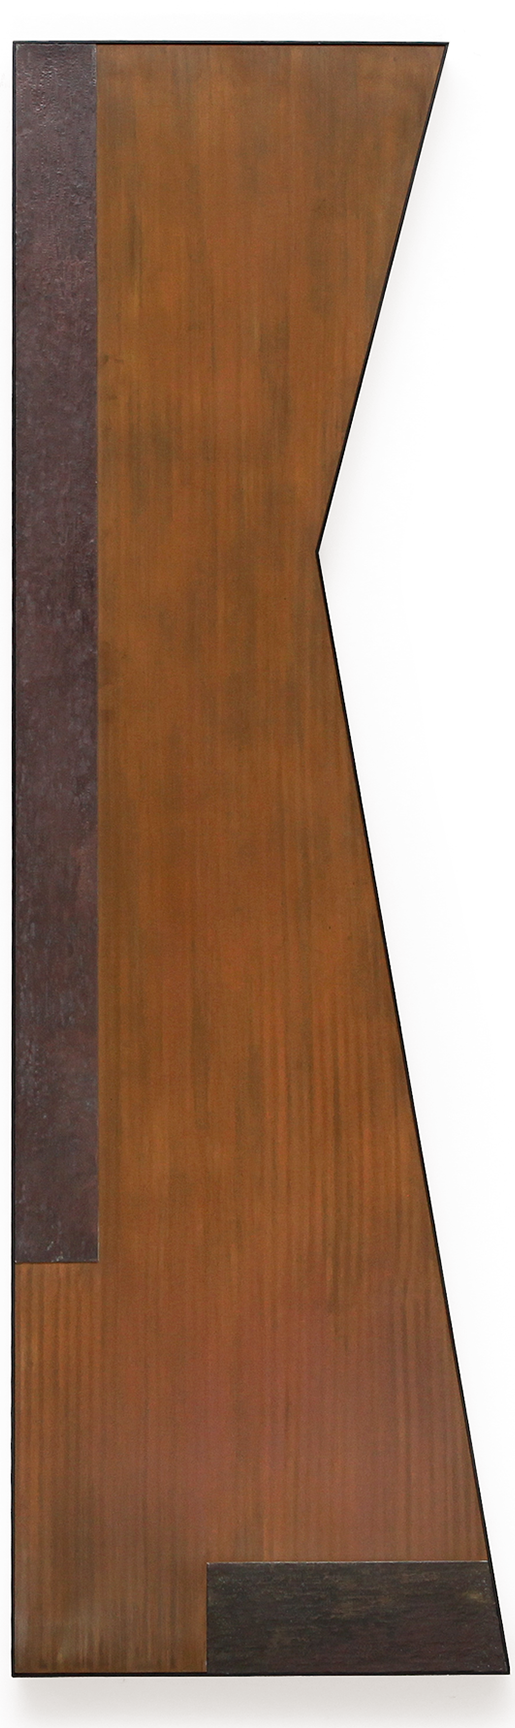 "Zig No. 4 , Dec. 2015, copper, tin, pine, plywood aluminum, 60 1/4""h x 18 1/4""w x 2""d  AVAILABLE"